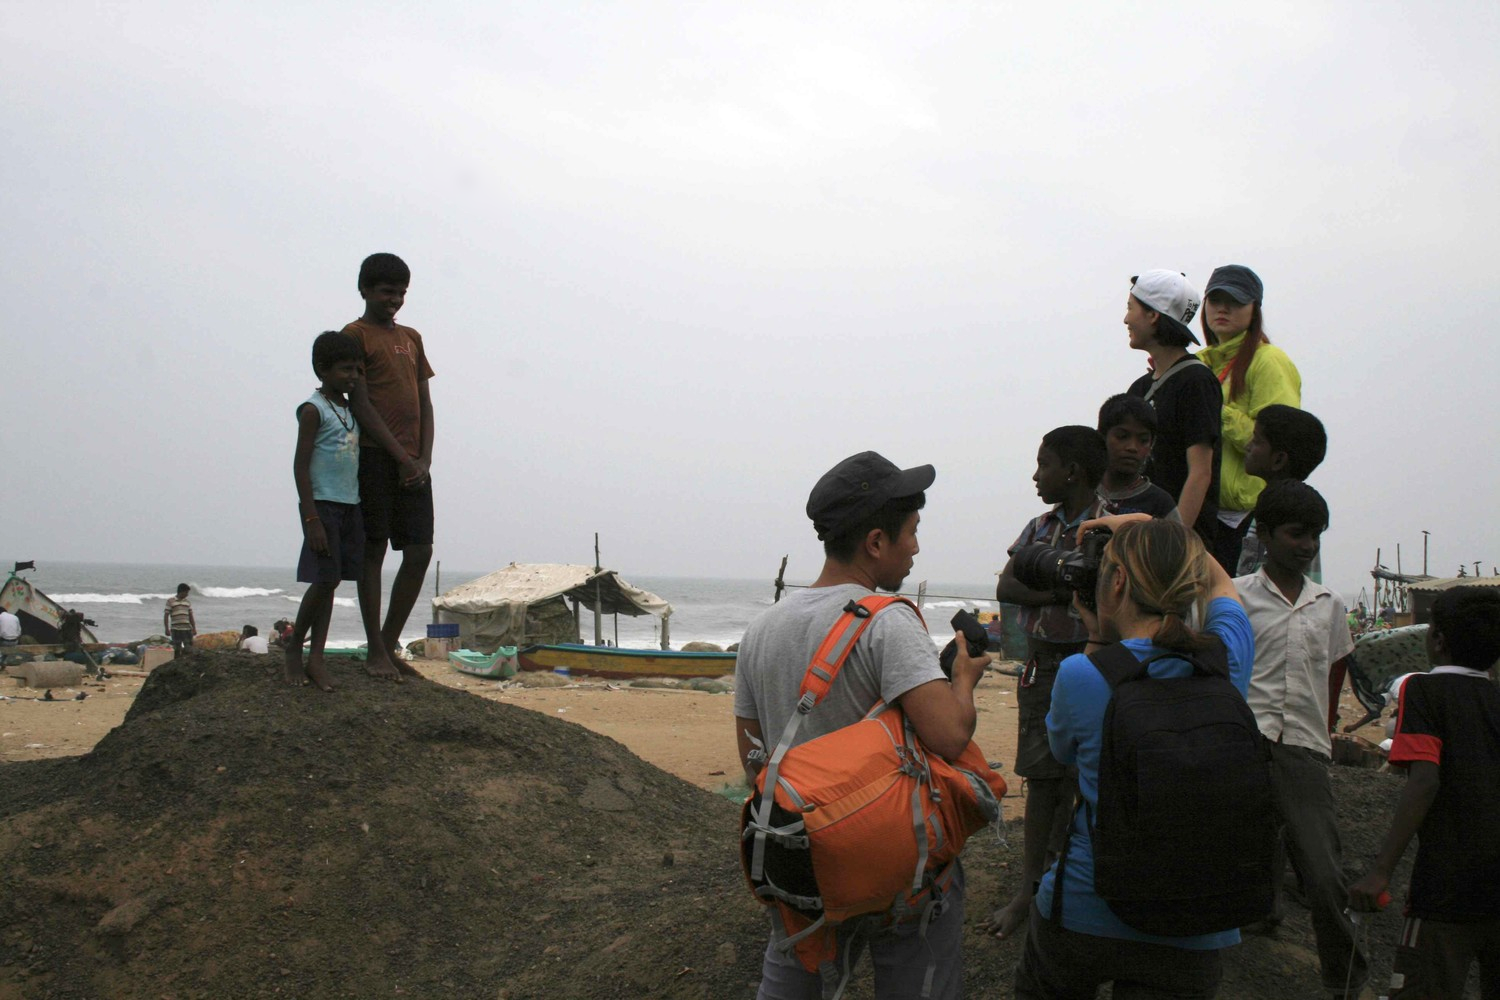 Suyeon Yun working with kids at Marina Beach, Chennai